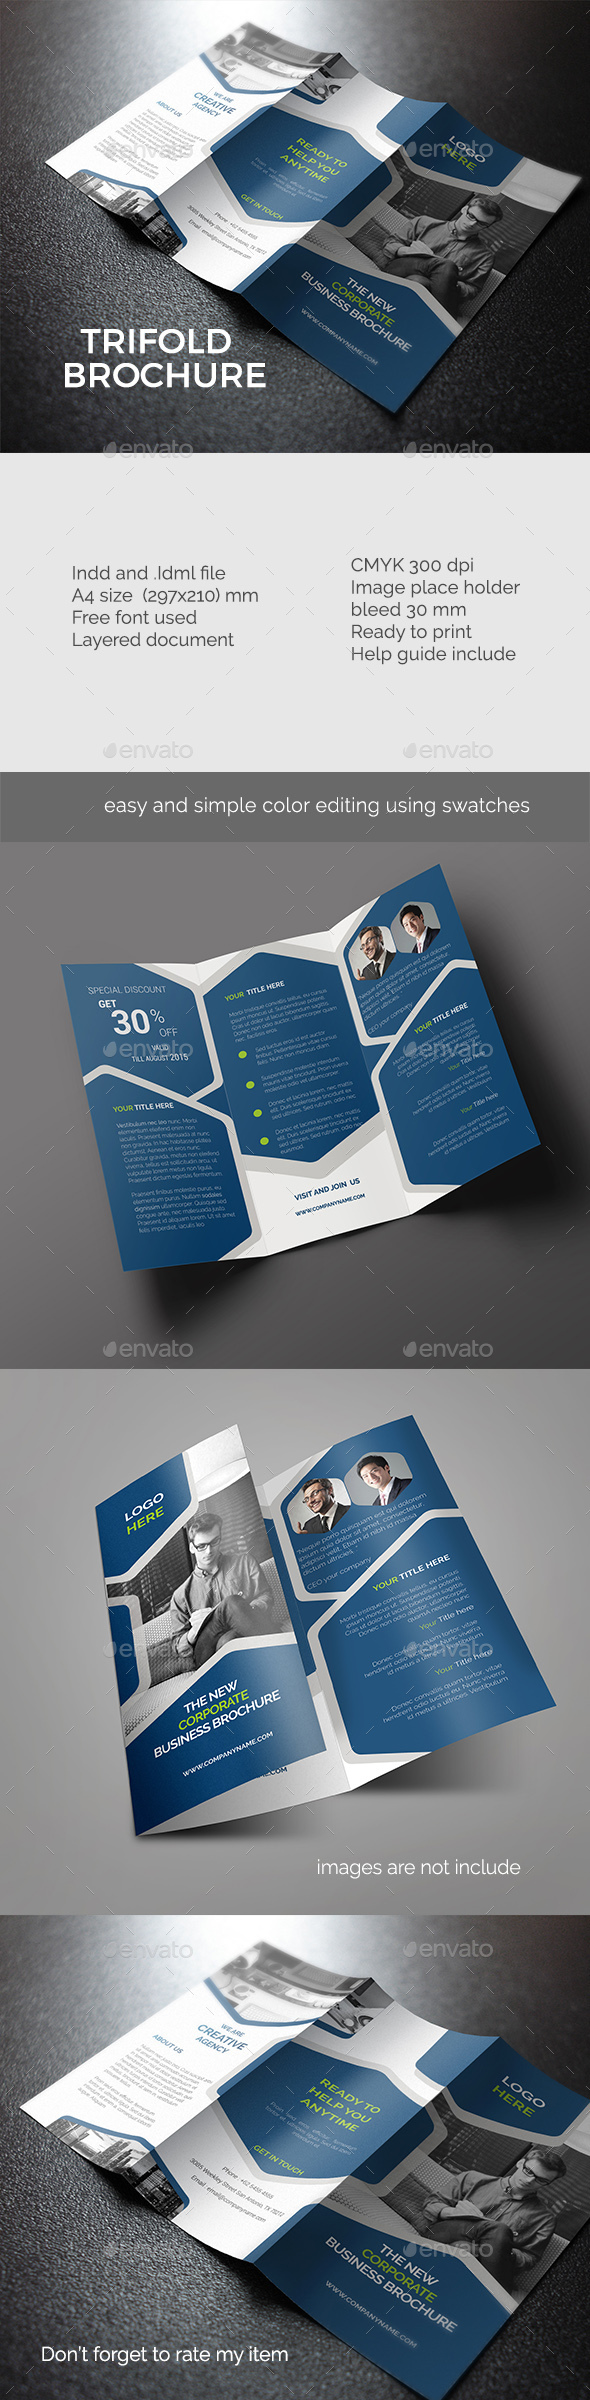 A4 Trifold Brochure  - Corporate Brochures